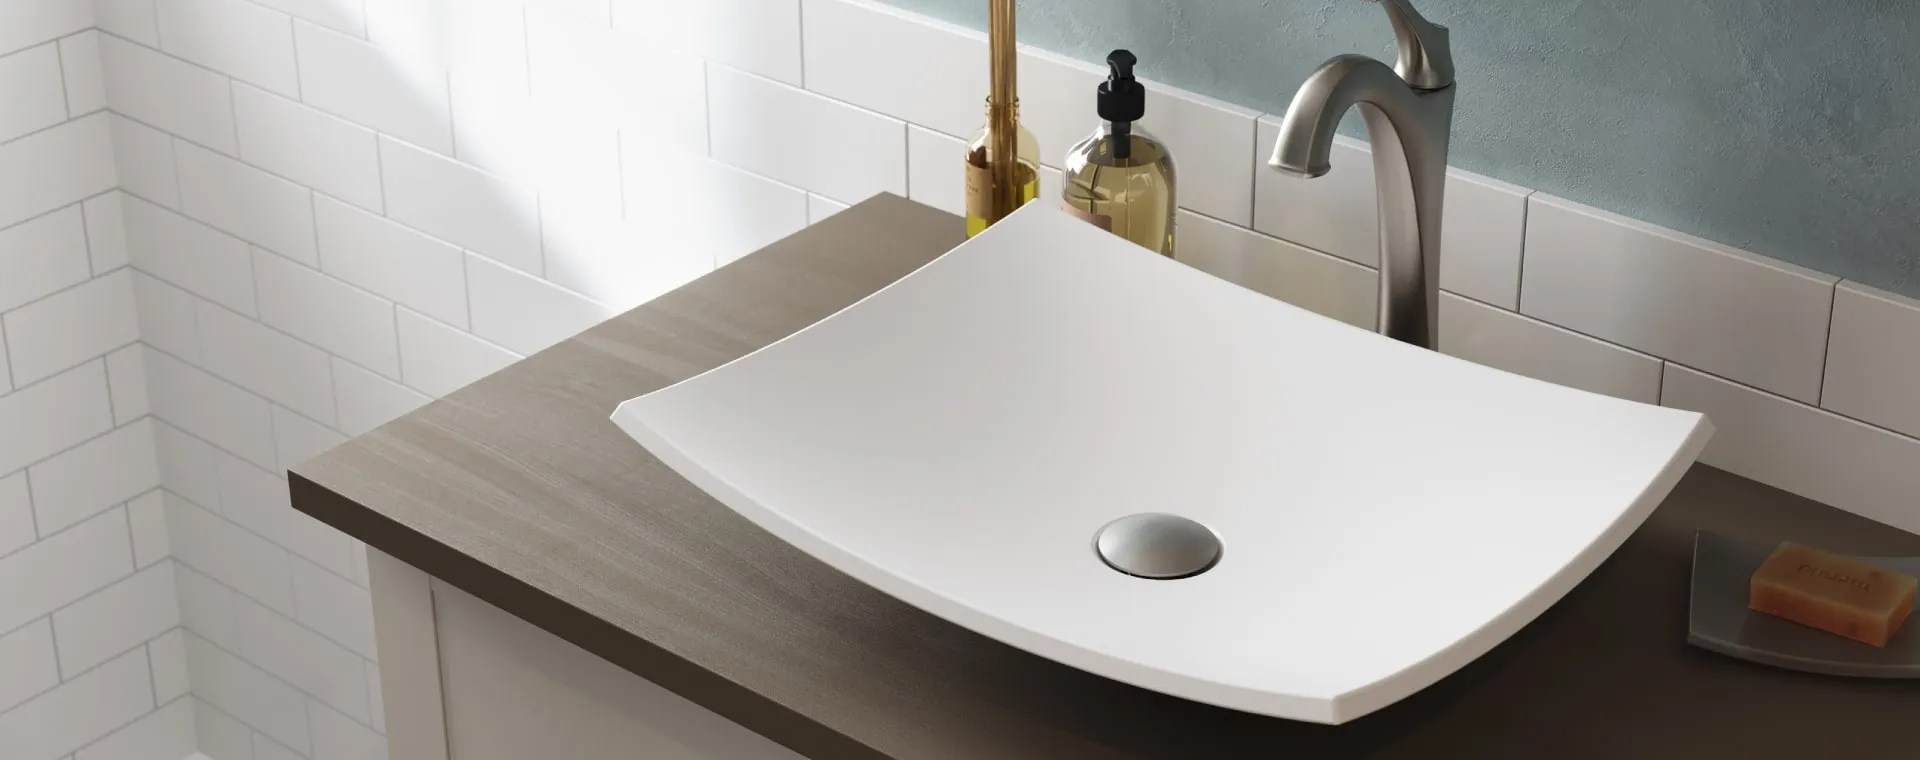 Kraus Bathroom Sinks Vessel Undermount Semi Recessed Etc